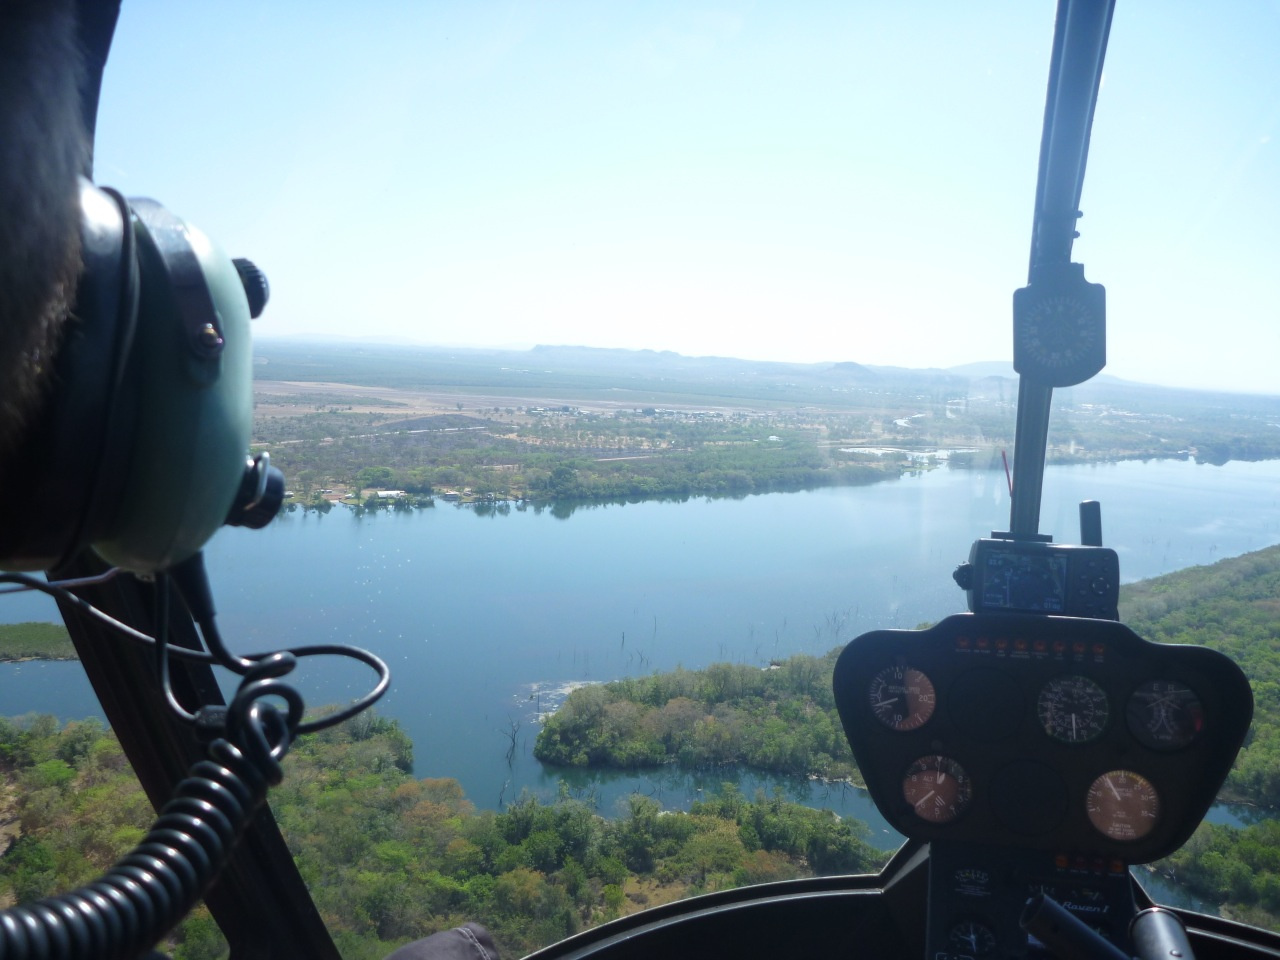 Kununurra Airport from a chopper over the Lake